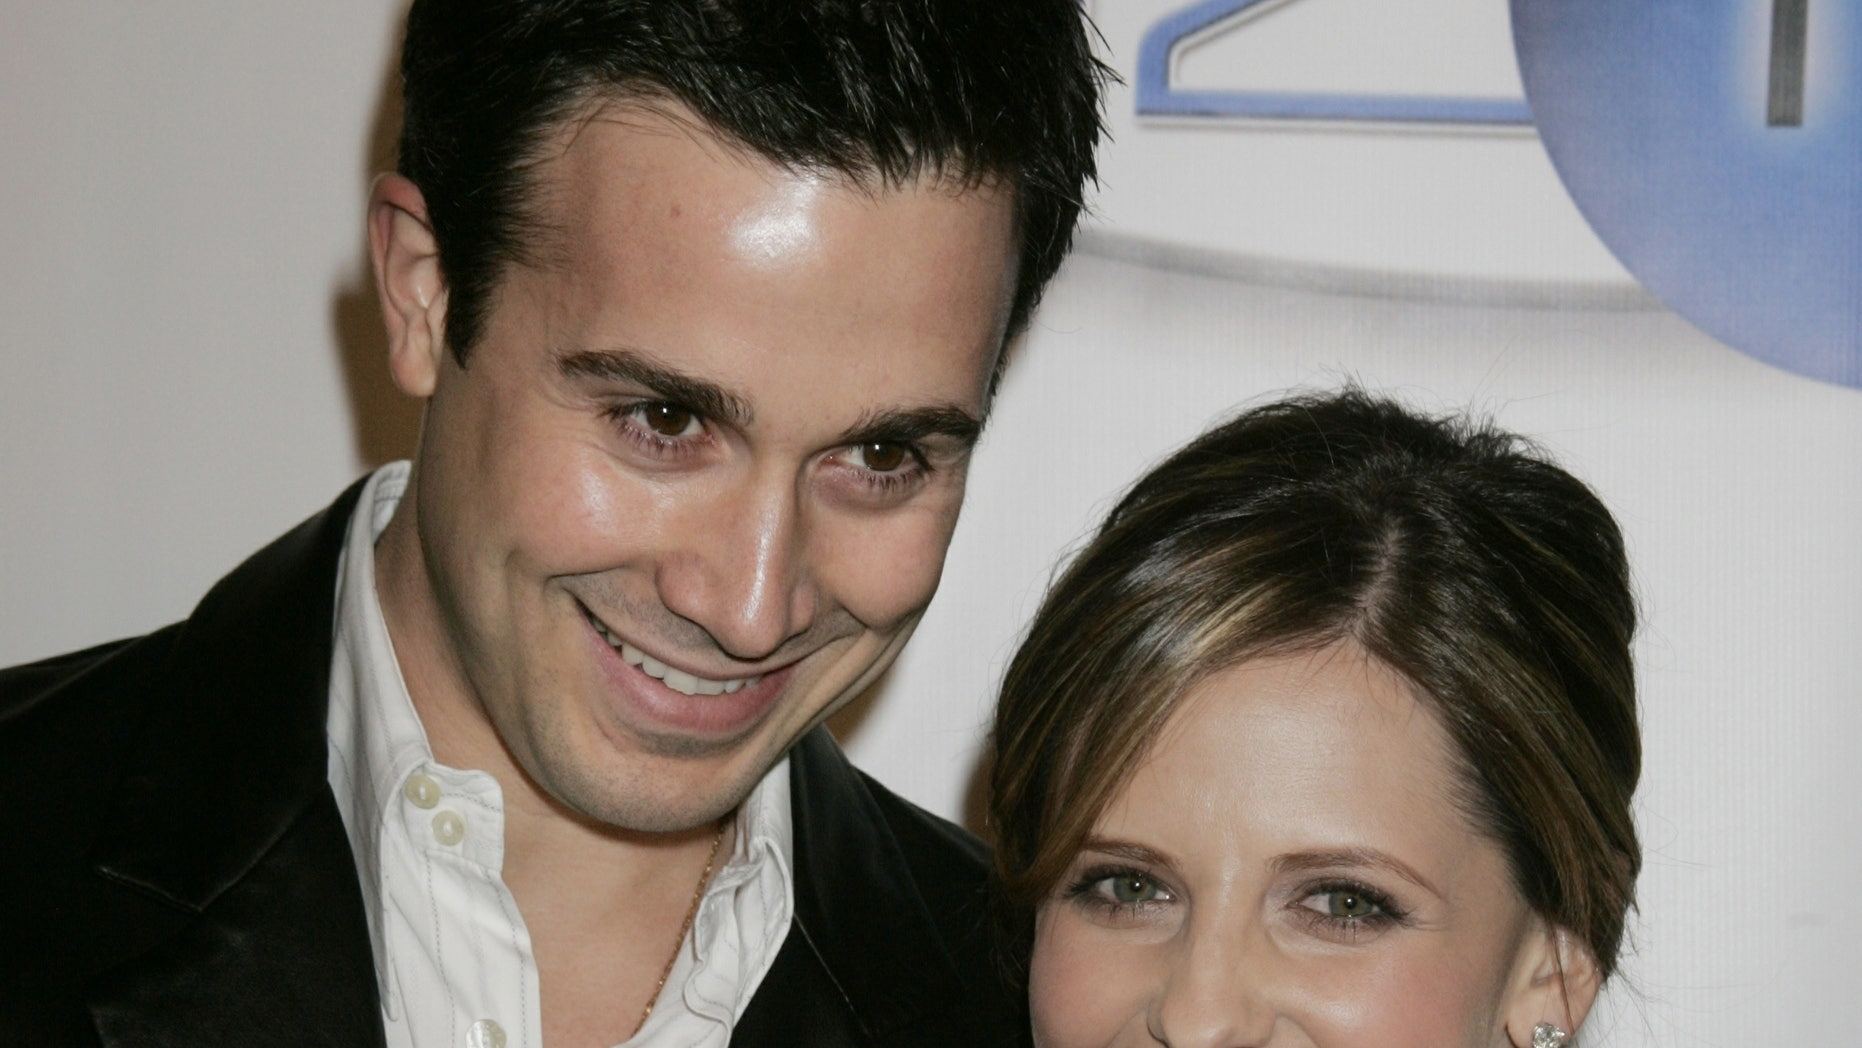 Actor Freddie Prinze, Jr. and wife, actress Sarah Michelle Gellar pose as they arrive at the launch party for In2TV, the first broadband television network on the Internet  March 15, 2006 in Beverly Hills, California. In2TV available free on AOL.com will offer thousands of classic television shows such as 'Welcome Back Kotter,' 'Chico & The Man,' and 'Wonder Woman' as well as interactive features. Prinze's father Freddie Prinze starred in 'Chico & The Man.' REUTERS/Fred Prouser - RTR177Y1